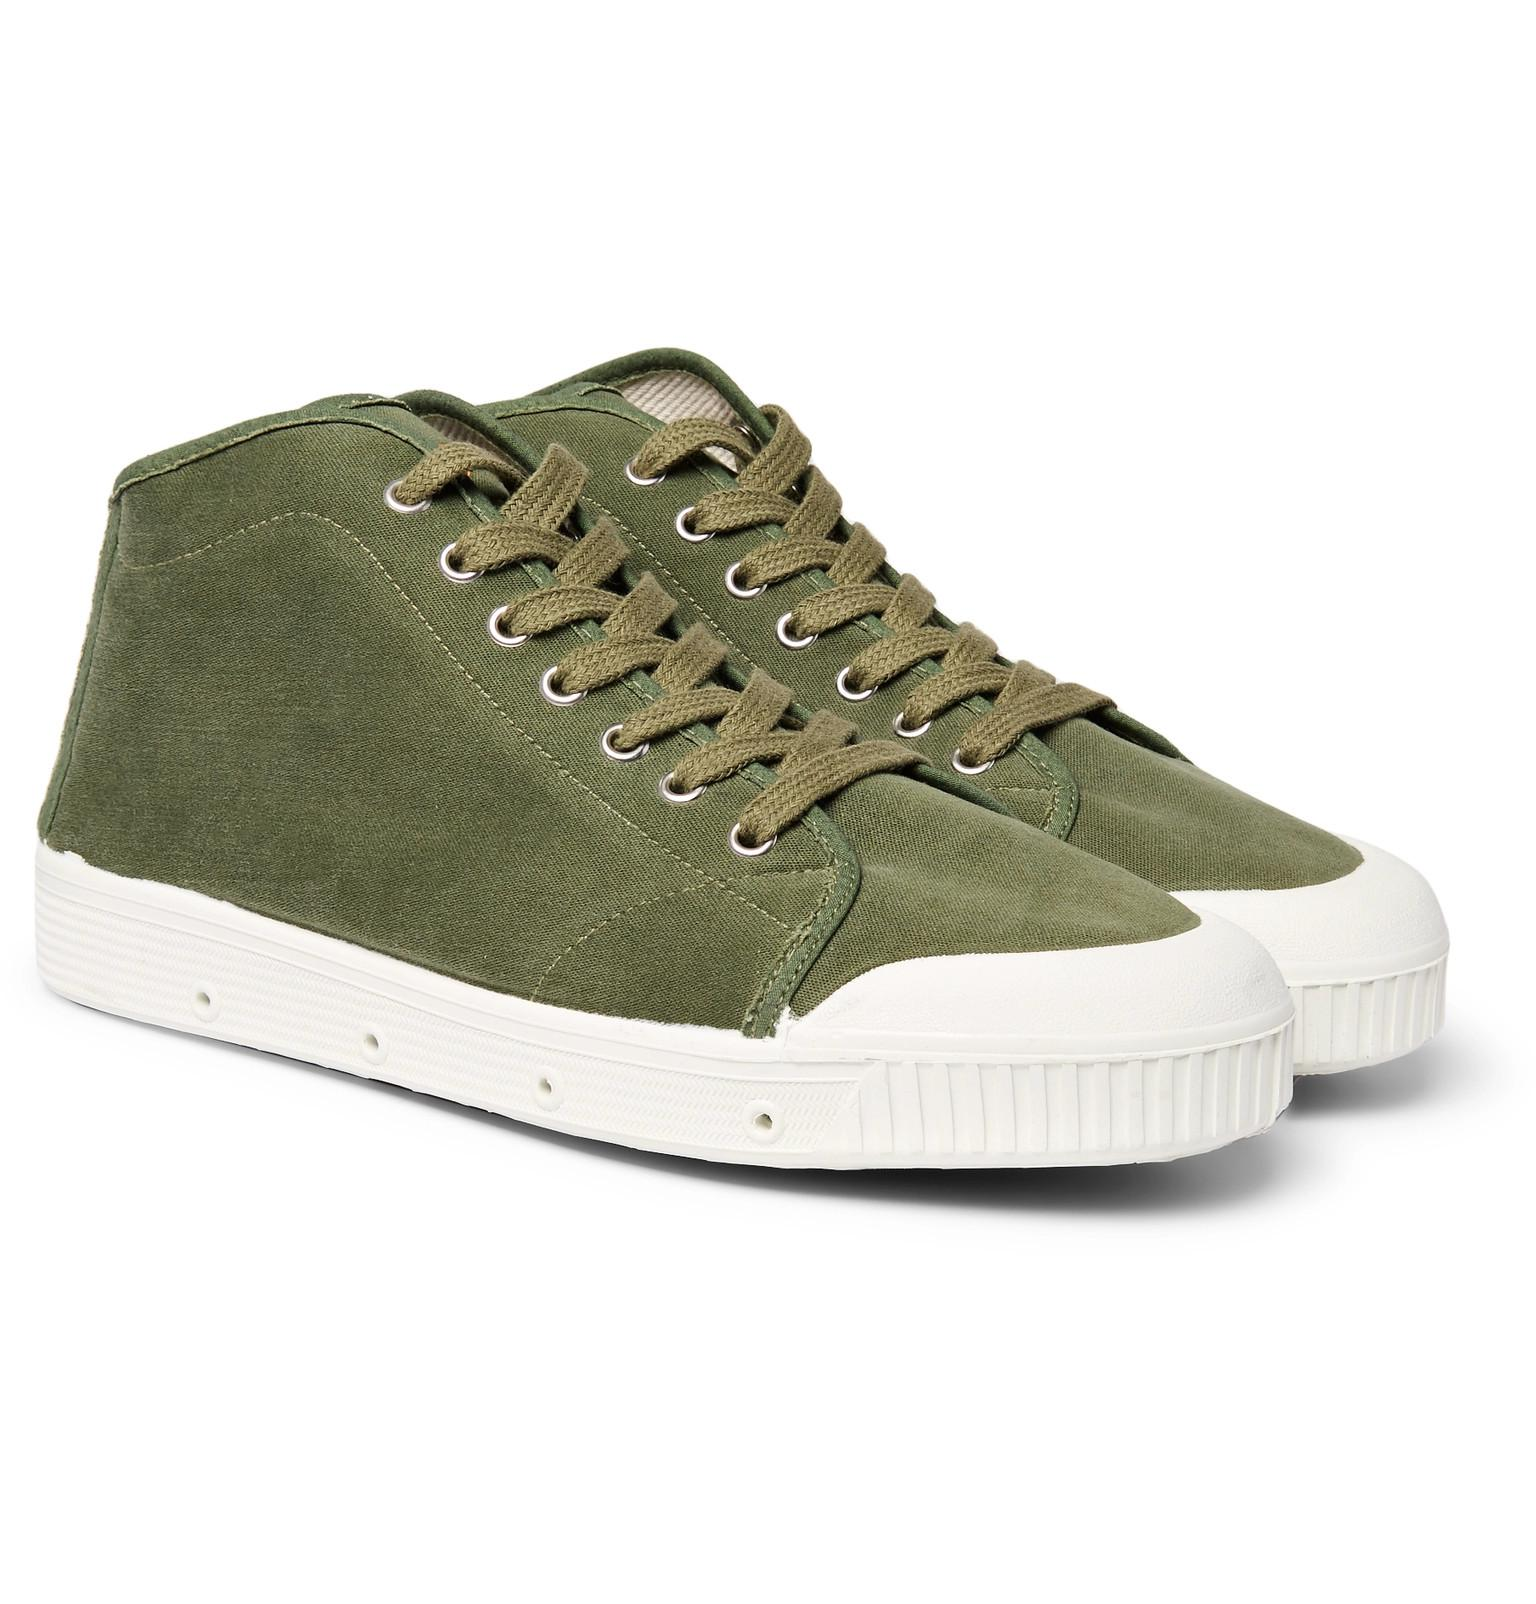 34ba0f6944b9c1 Canvas Lyst Officine Generale In Top Court High Spring Sneakers xpRIUpT